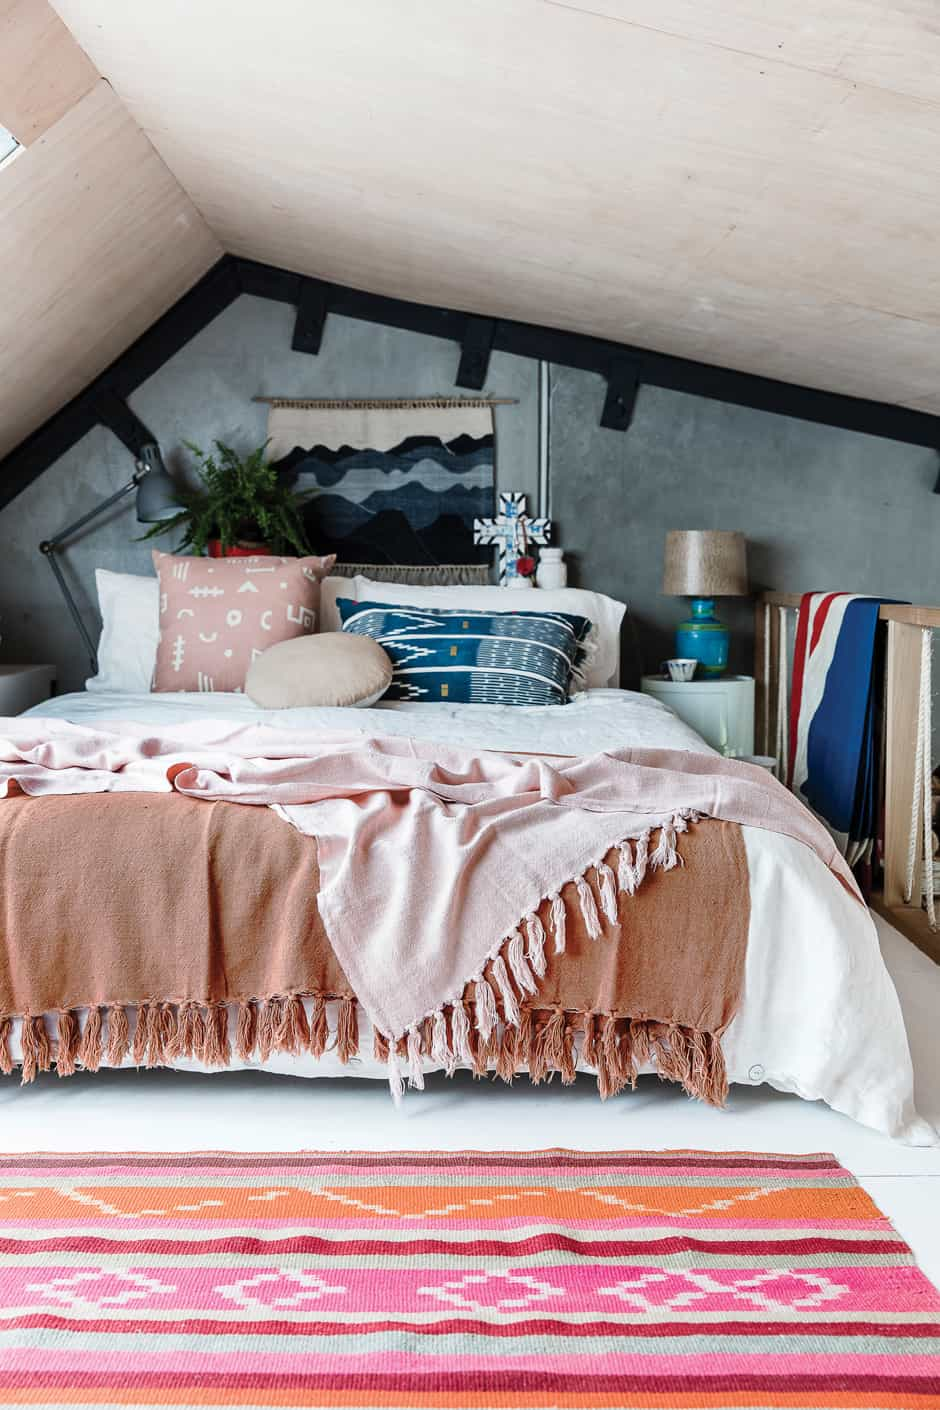 MASTER BEDROOM The couple's attic bedroom is filled to the brim with an eclectic collection of items, including a rug from Argentina, throws by Citta Design and a Componibili storage unit by Anna Castelli Ferrieri for Kartell paired with a thrift store lamp.